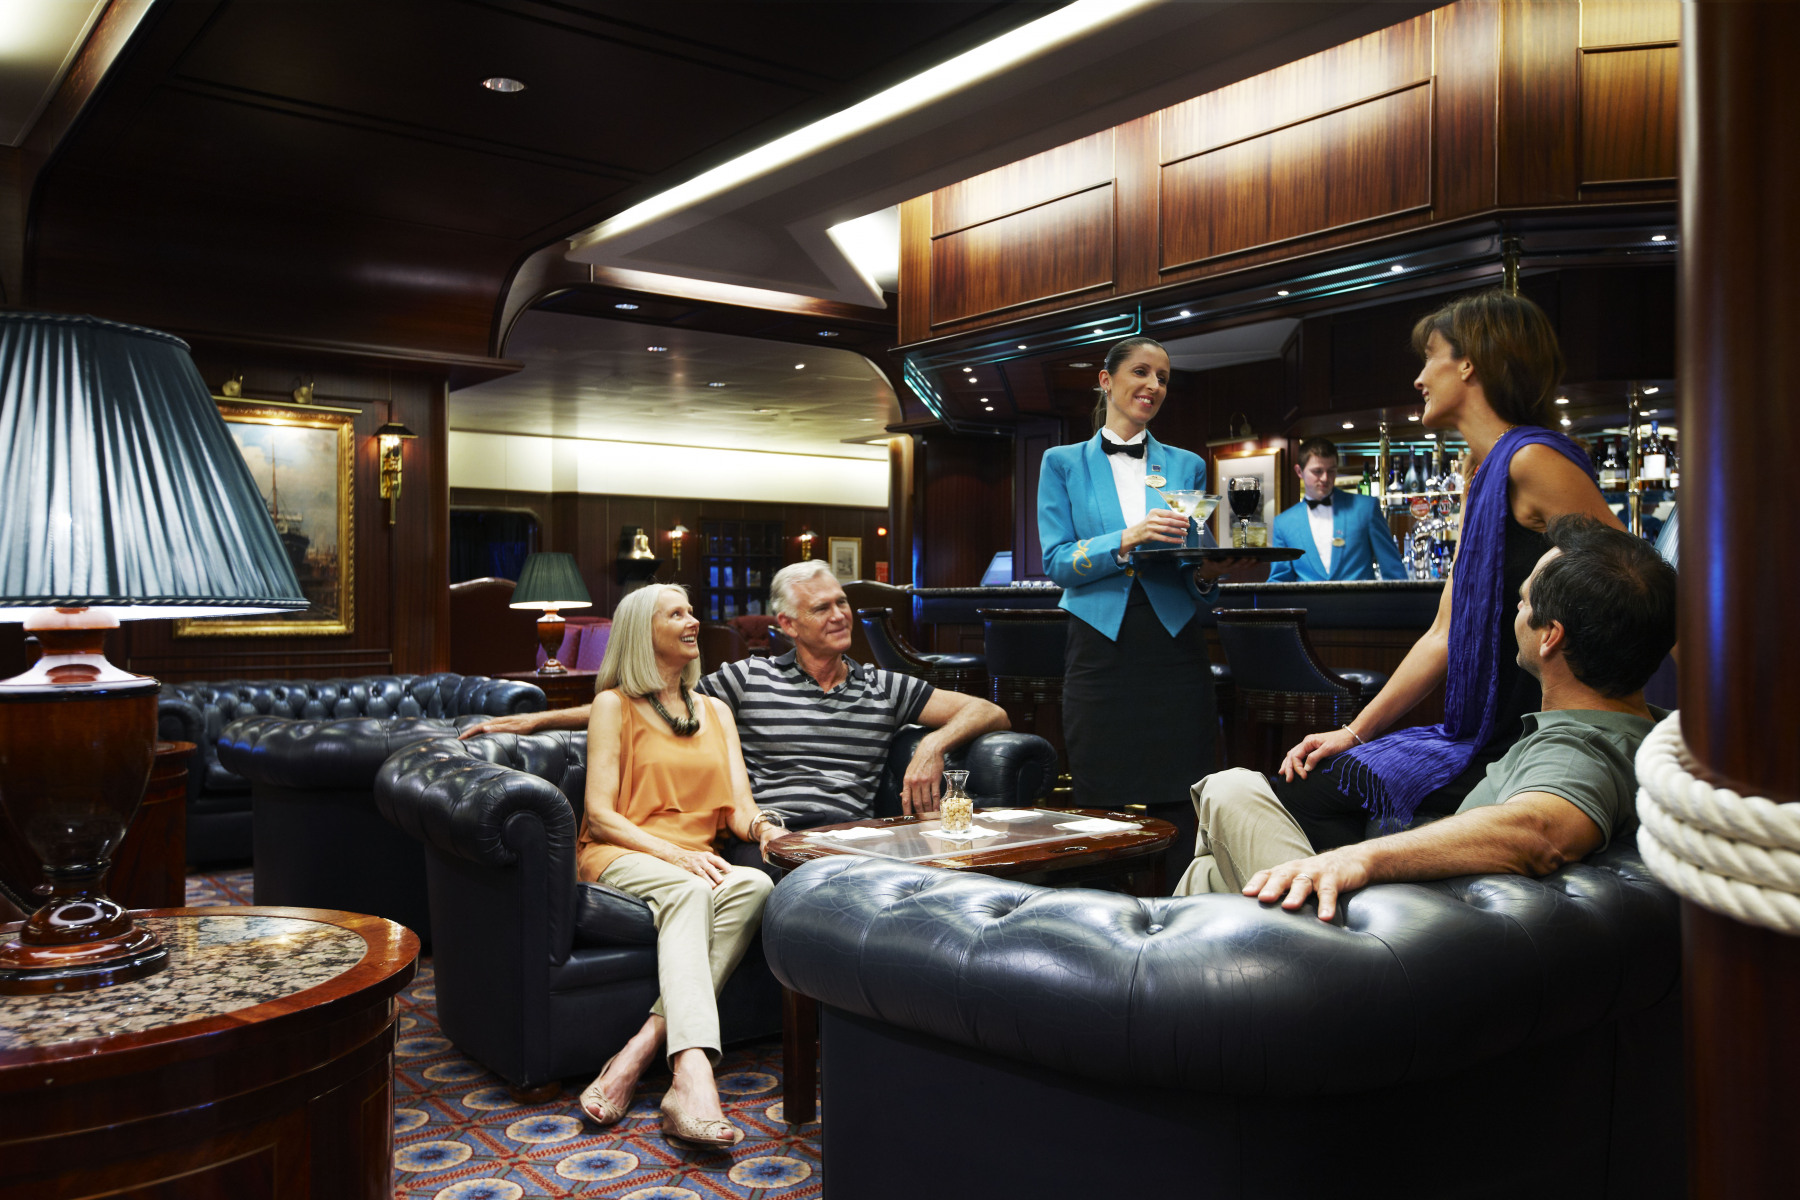 Princess Cruises Grand class Ruby Princess Wheelhouse Bar.jpg